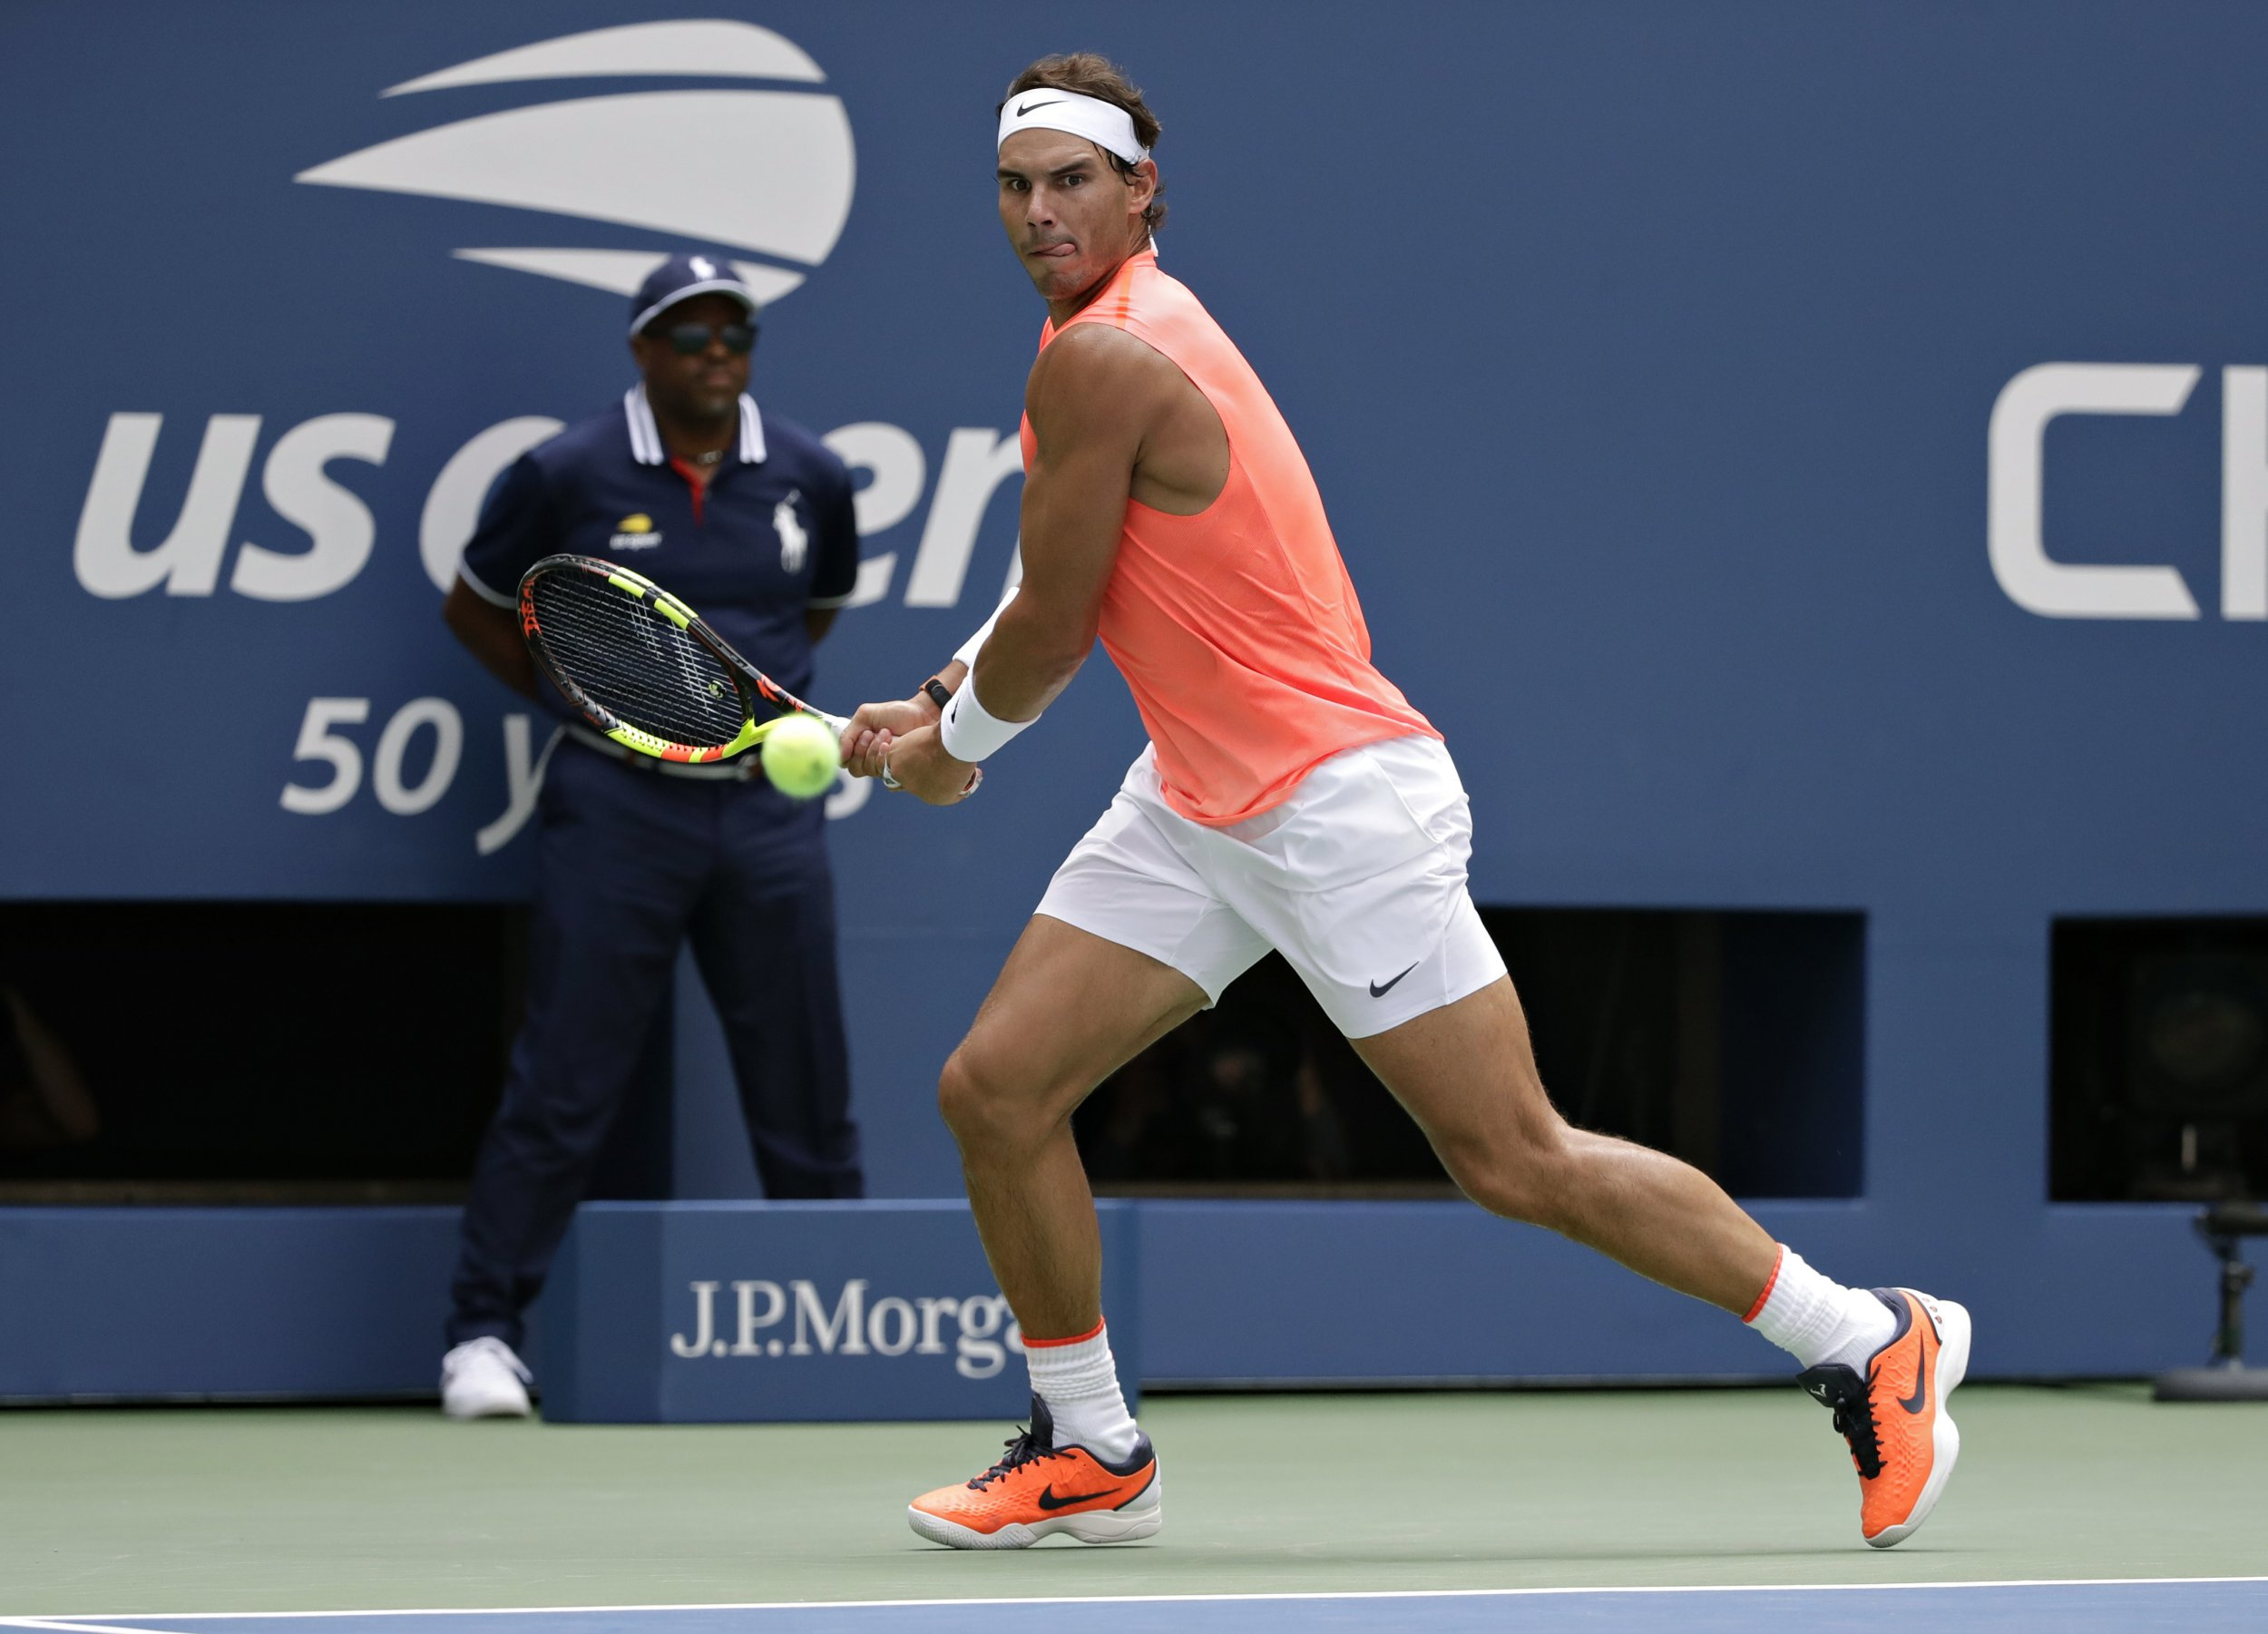 Rafael Nadal, of Spain, chases down a shot from Nikoloz Basilashvili, of Georgia, during the fourth round of the U.S. Open tennis tournament, Sunday, Sept. 2, 2018, in New York. (AP Photo/Carolyn Kaster)